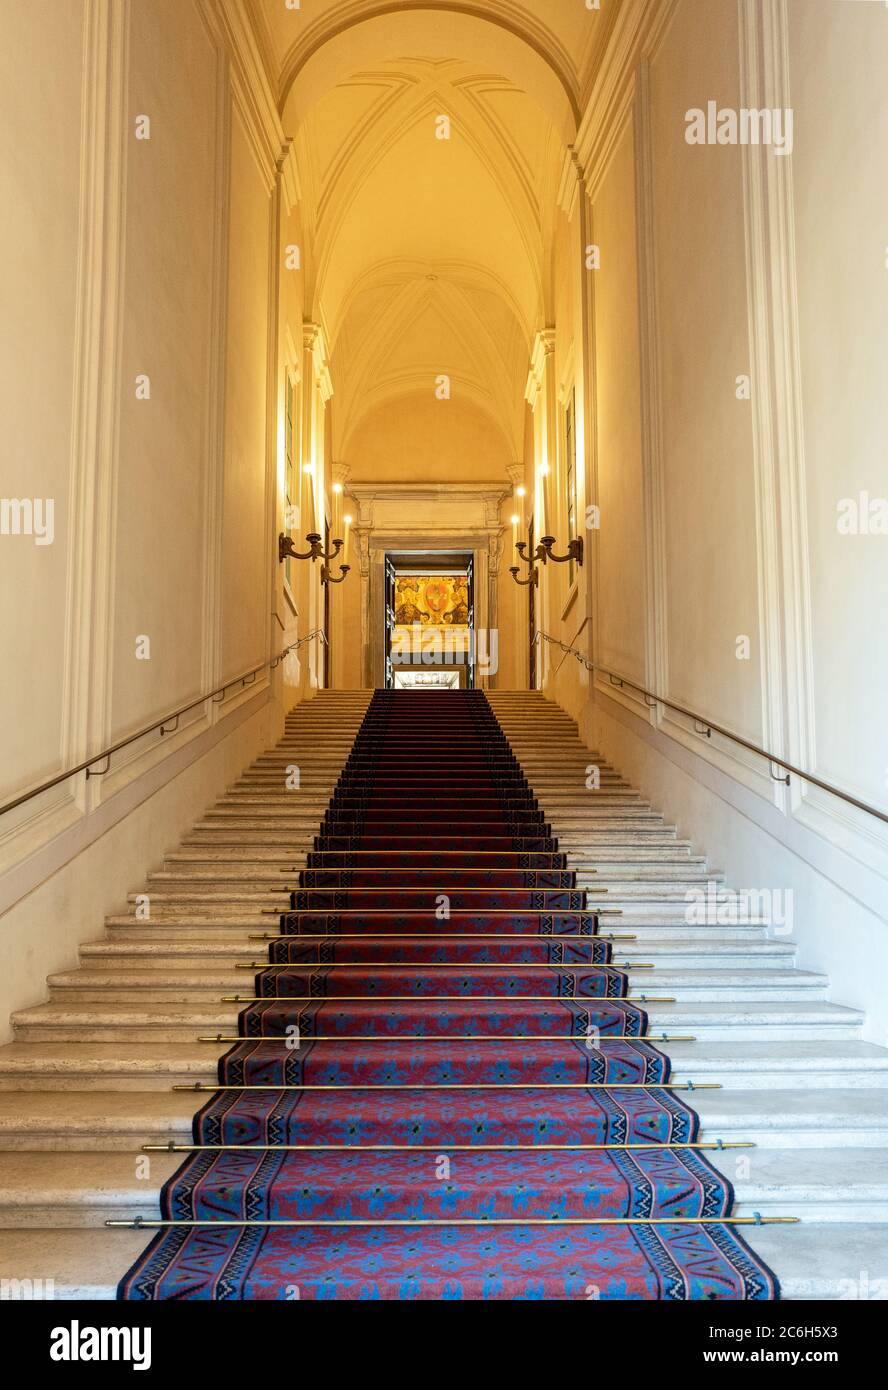 Rome, Italy, The main staircase of the Quirinale palace Stock Photo